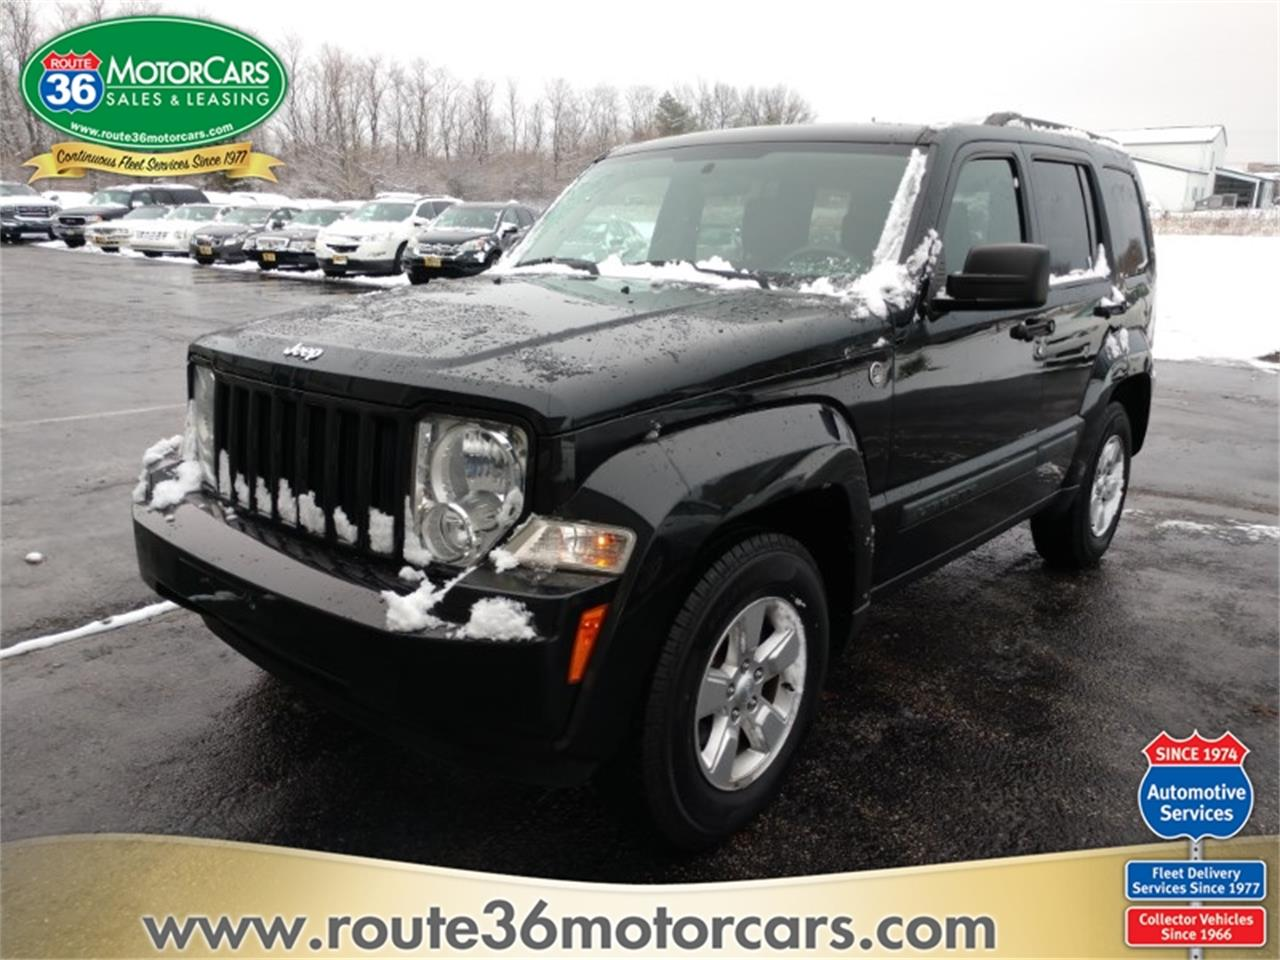 for sale 2009 jeep liberty in dublin, ohio cars - dublin, oh at geebo